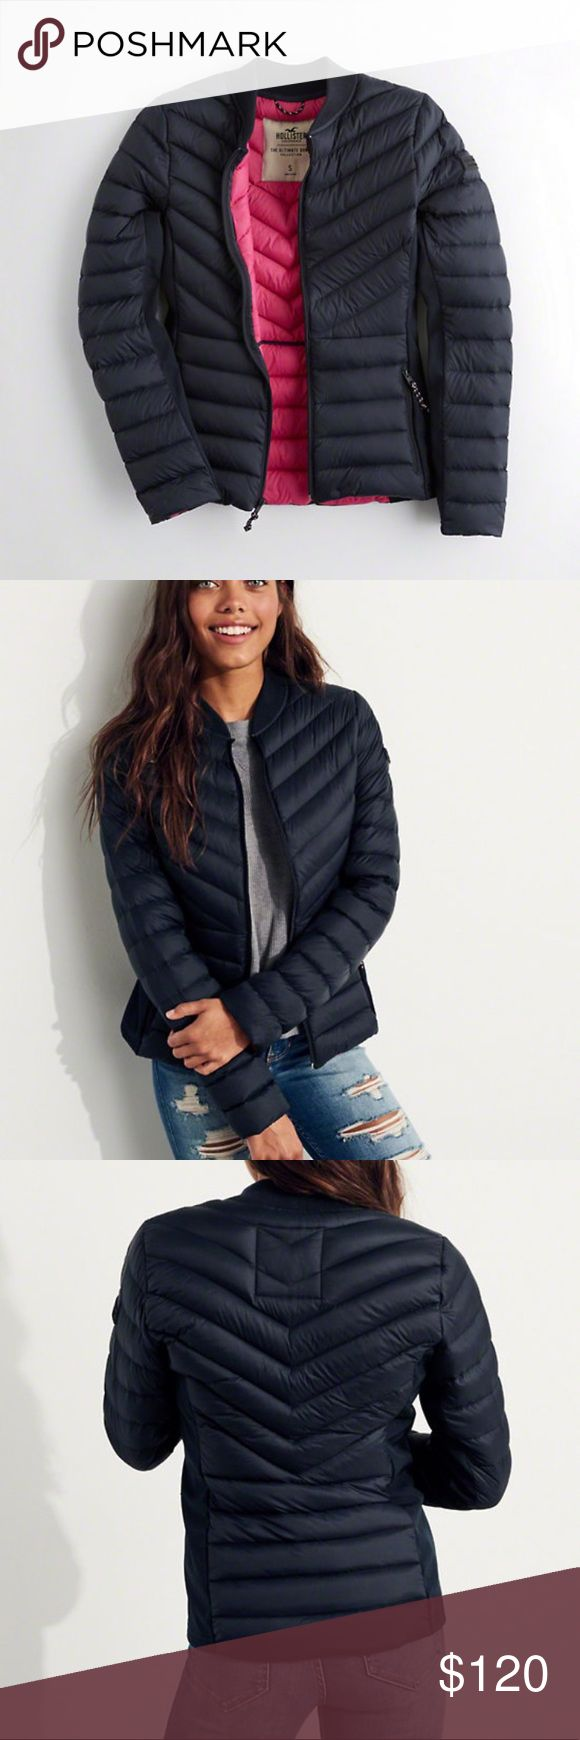 Hollister Puffer Jacket A lightweight, but warm puffer jacket made with water and wind resistant nylon fabric, featuring 90/10 down/feather fill, 700 fill power, a ribbed collar, side zip pockets and smooth, stretch side panels, Imported. Like new no flaws only worn a couple of times ❣️❣️❣️❣️ Hollister Jackets & Coats Puffers